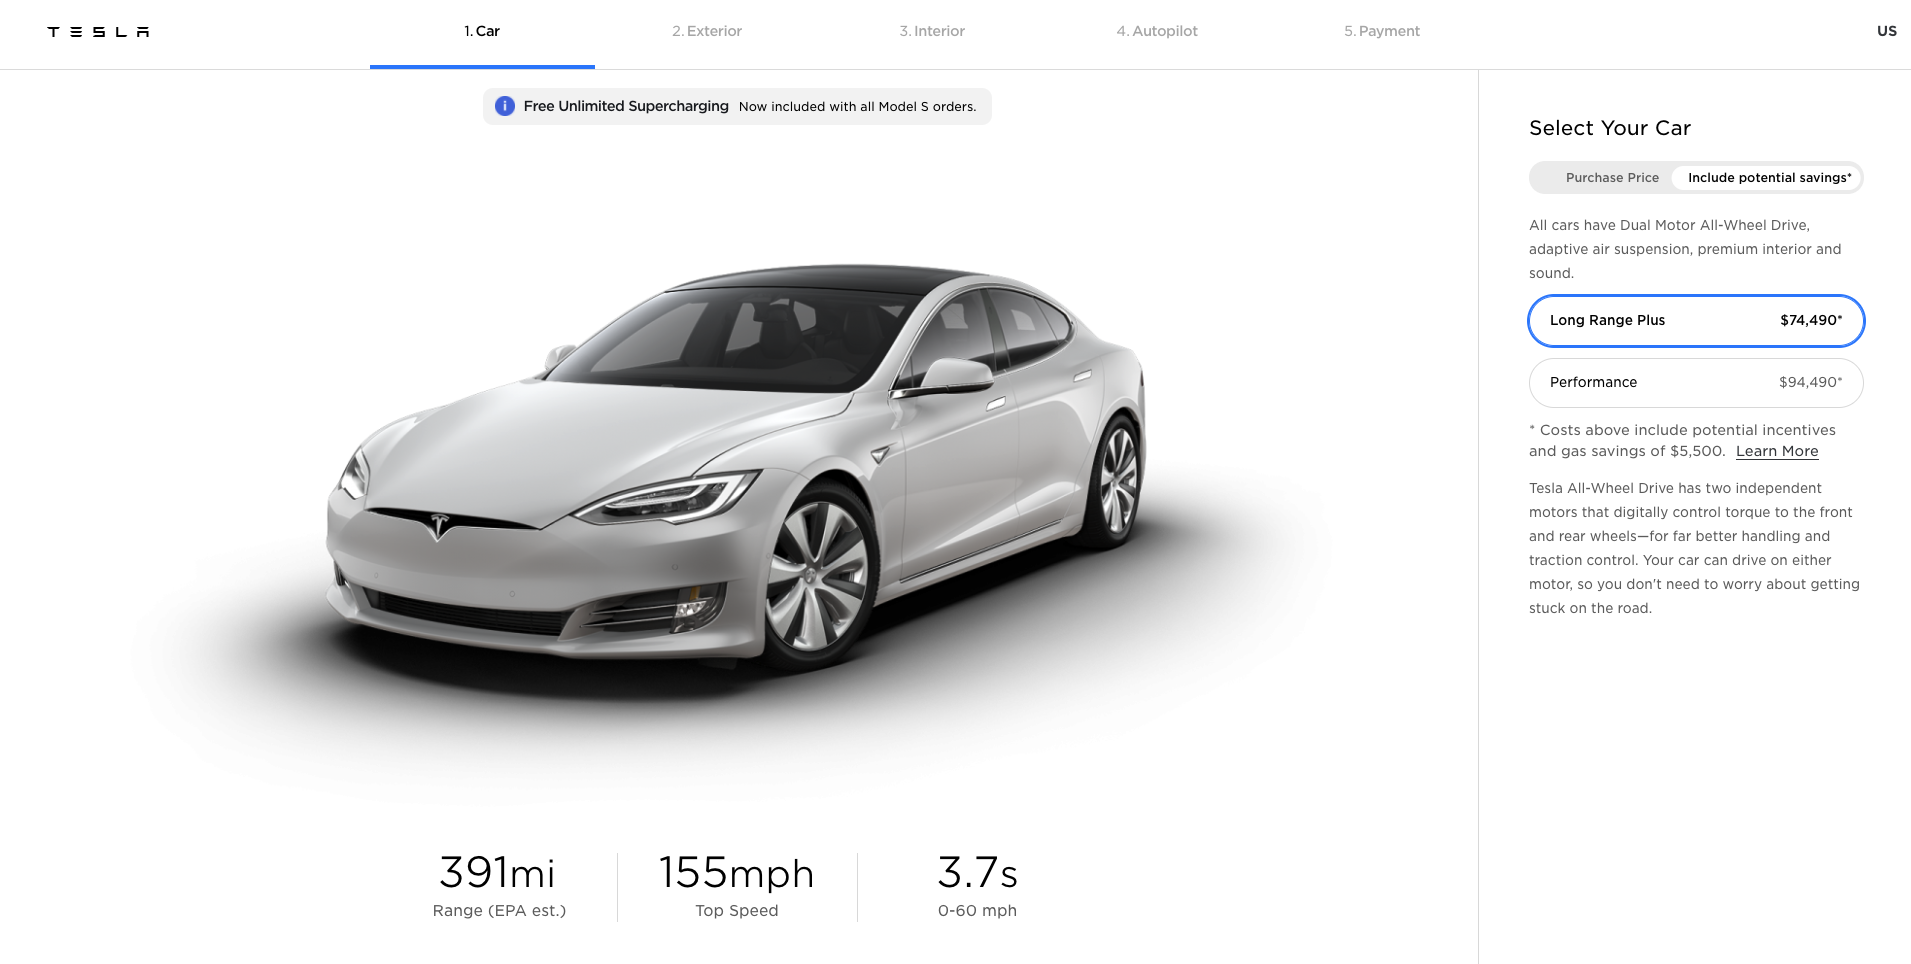 Tesla Model S US Design Studio